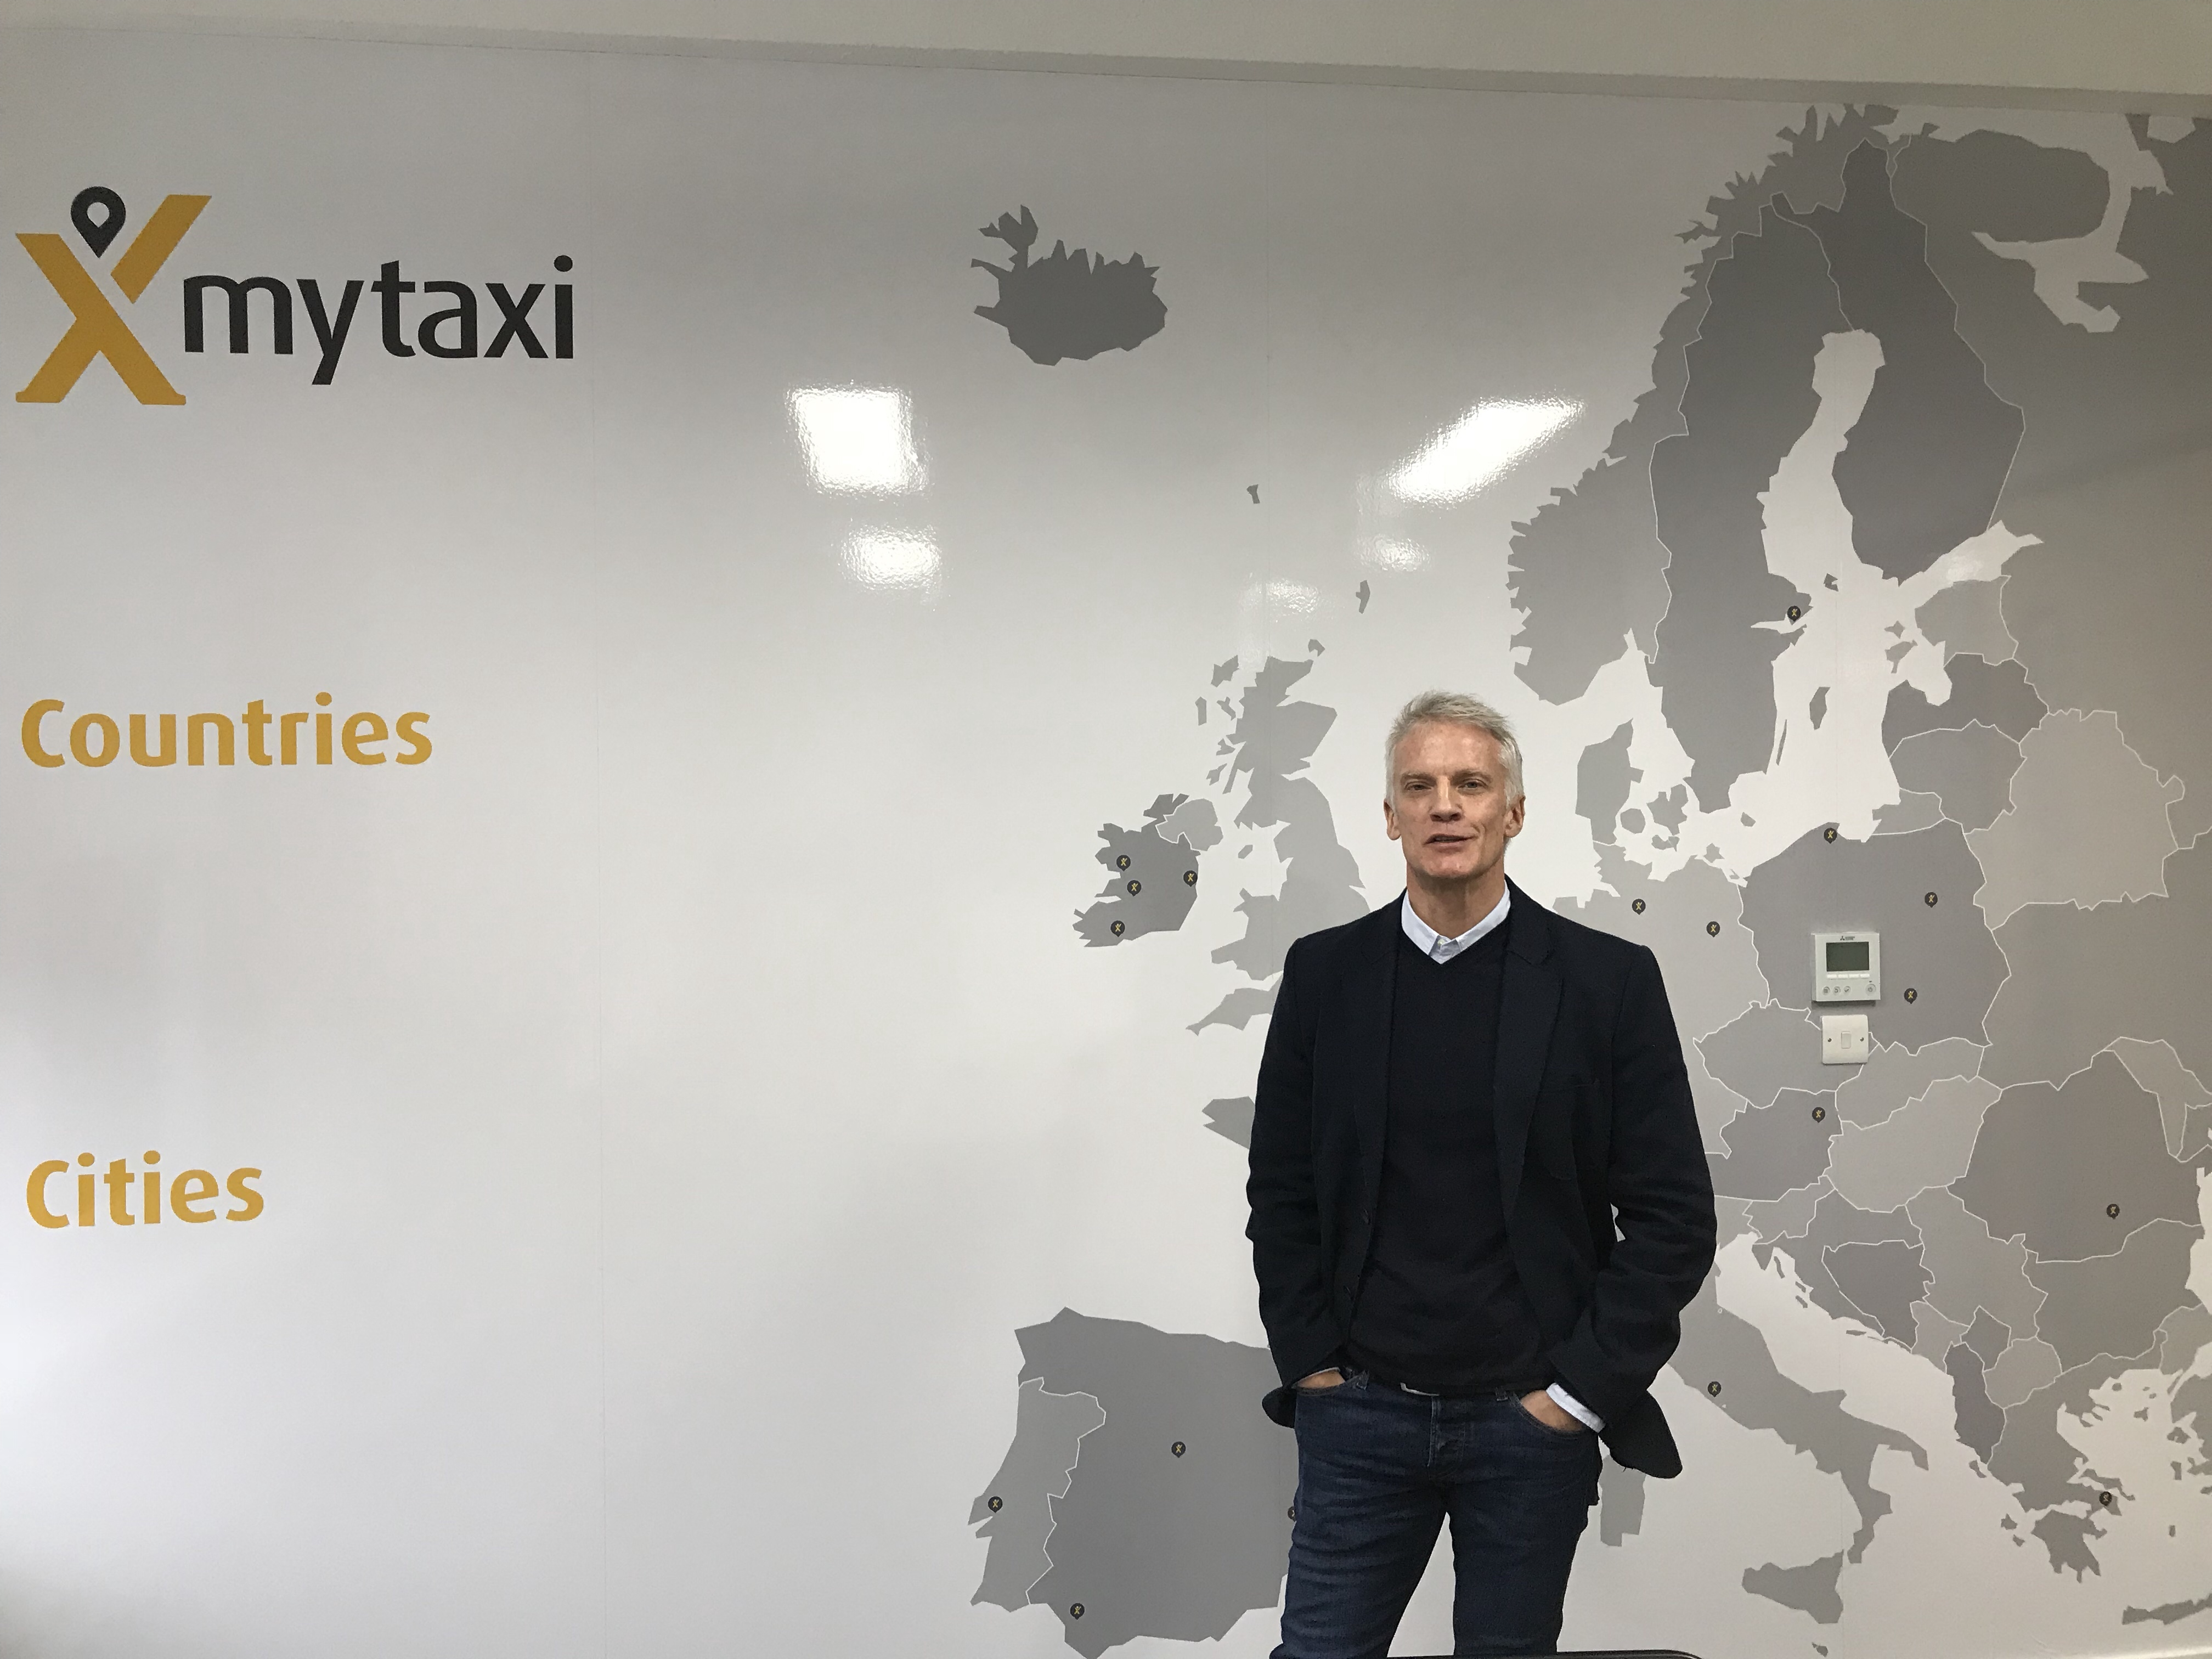 Mytaxi hopes for 2018 | London Cab Drivers Club